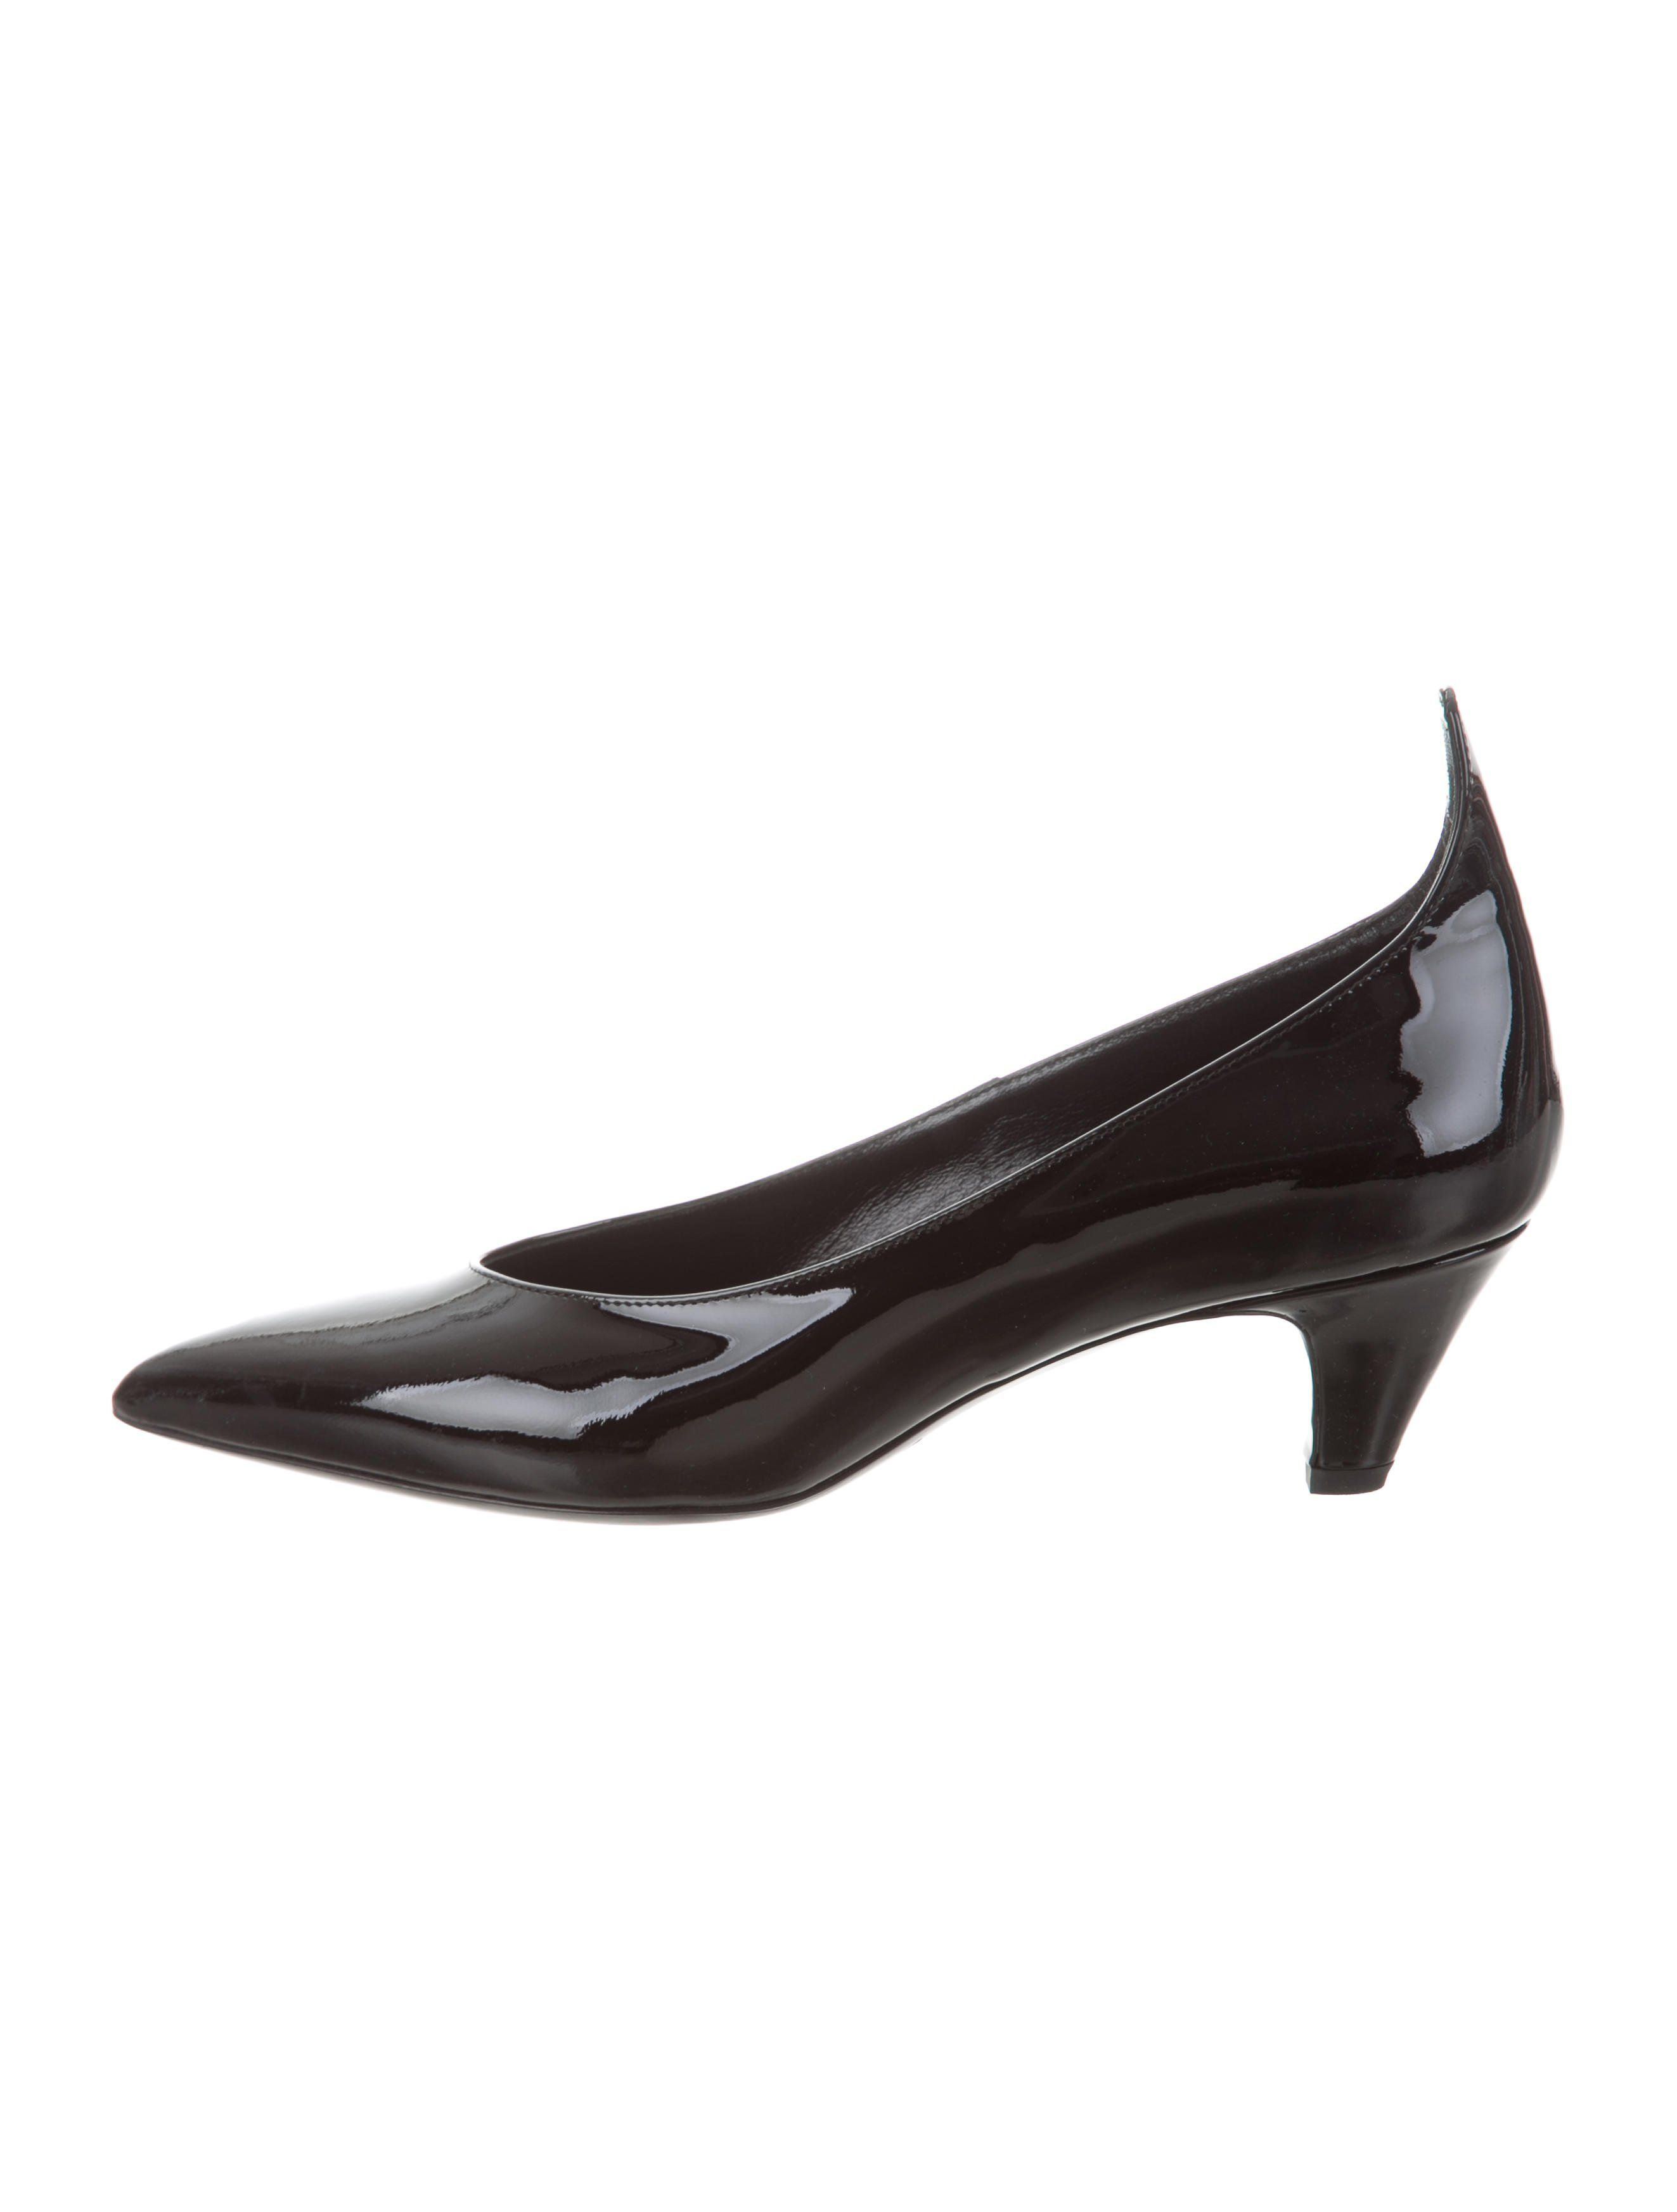 bd90ac254a7 Pointed-Toe Patent Leather Pumps w/ Tags in 2019   fashion   Patent ...